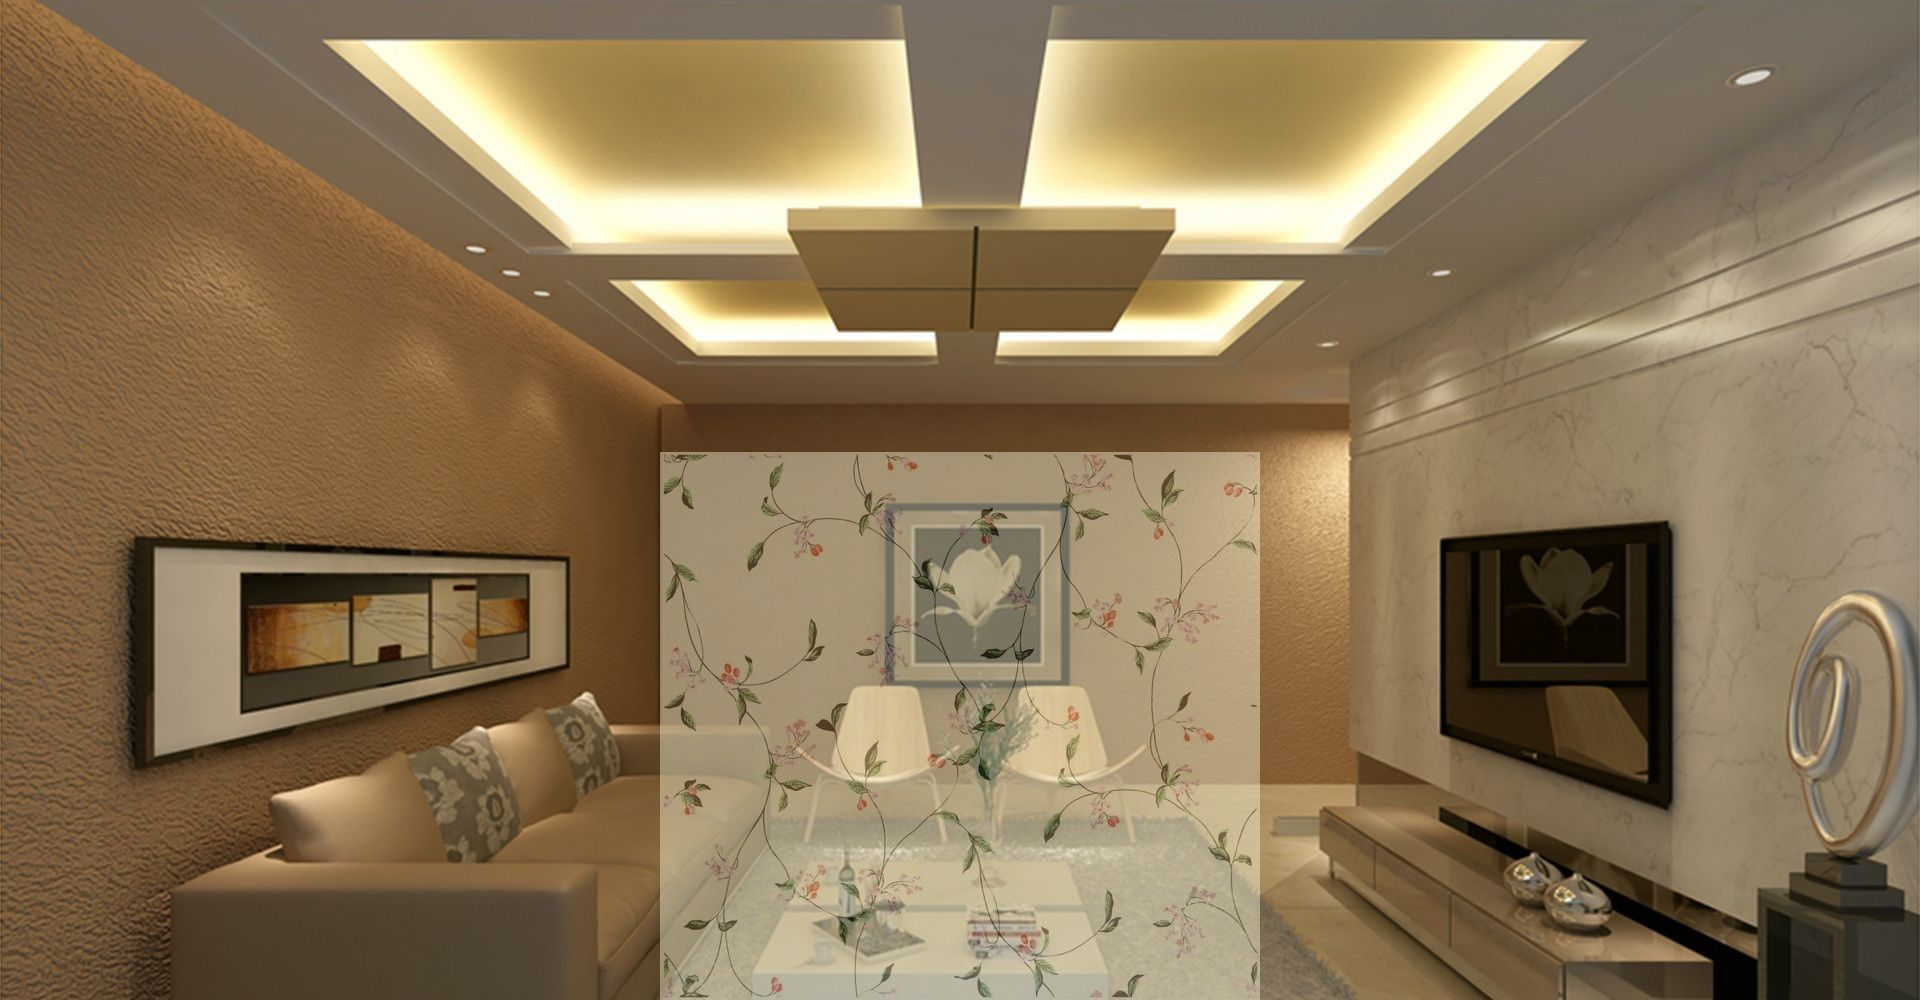 Marvelous tricks false ceiling design lobby simple false ceiling